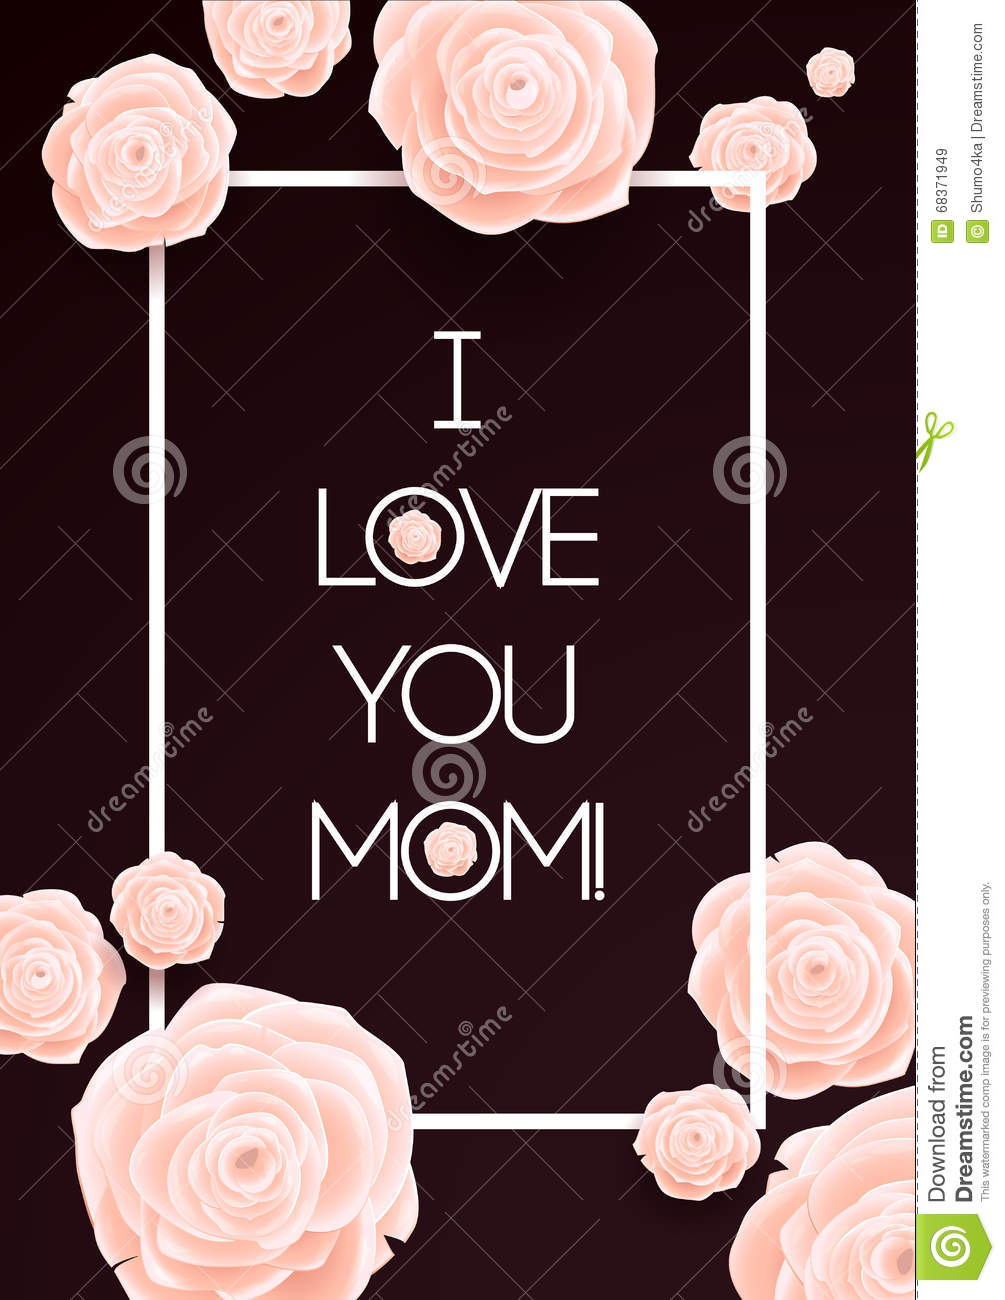 I Love You Mom Happy Mothers Day Beautiful Blooming Rose Flowers On